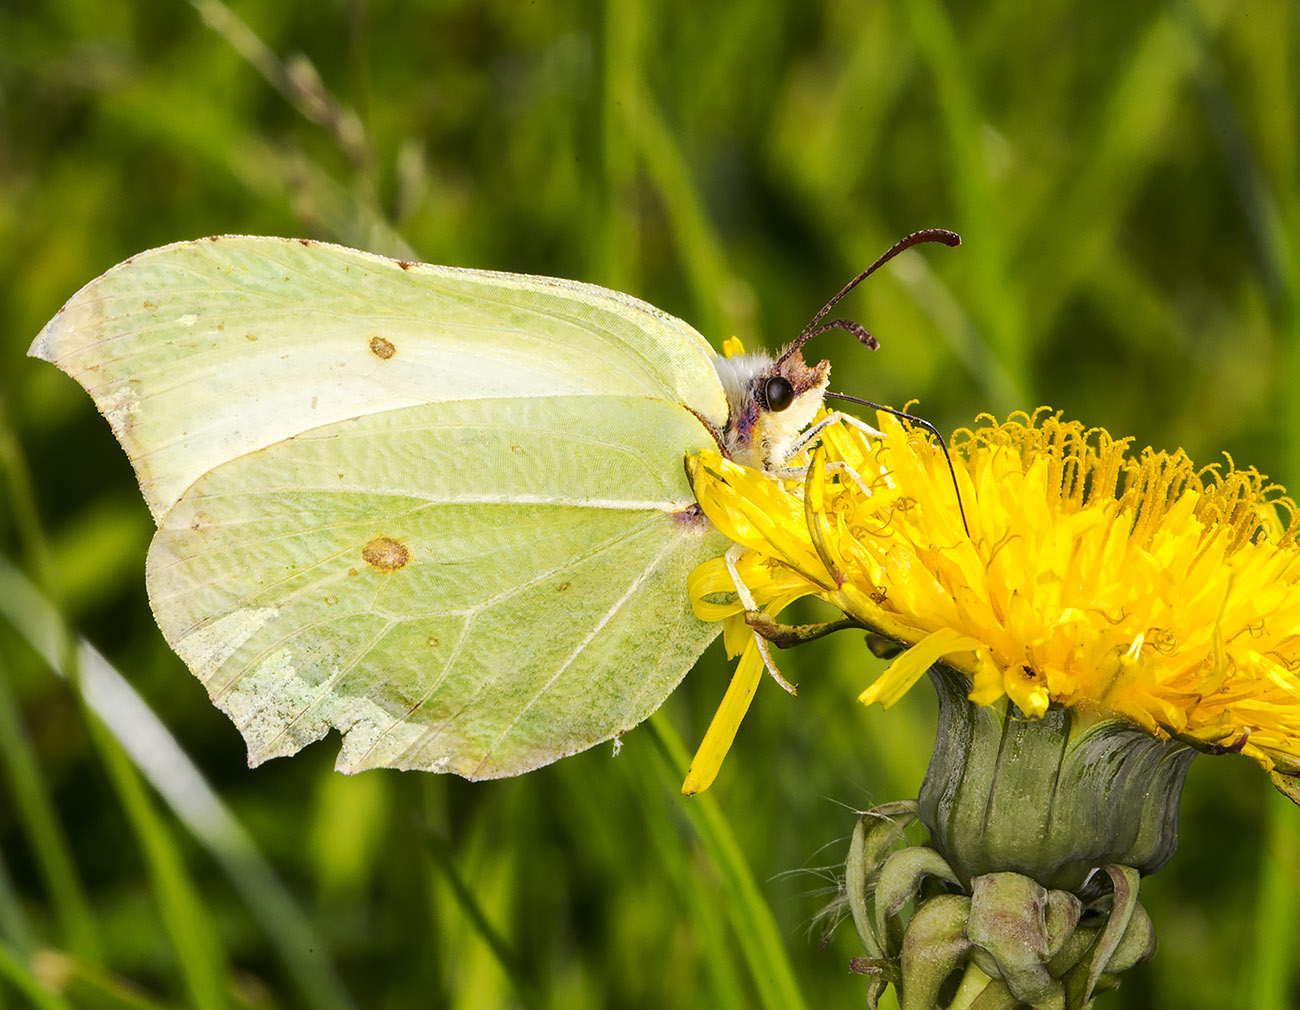 Brimstone, Gonepteryx rhamni, male, on a dandelion.  Monad 4061, 19 May 2014.